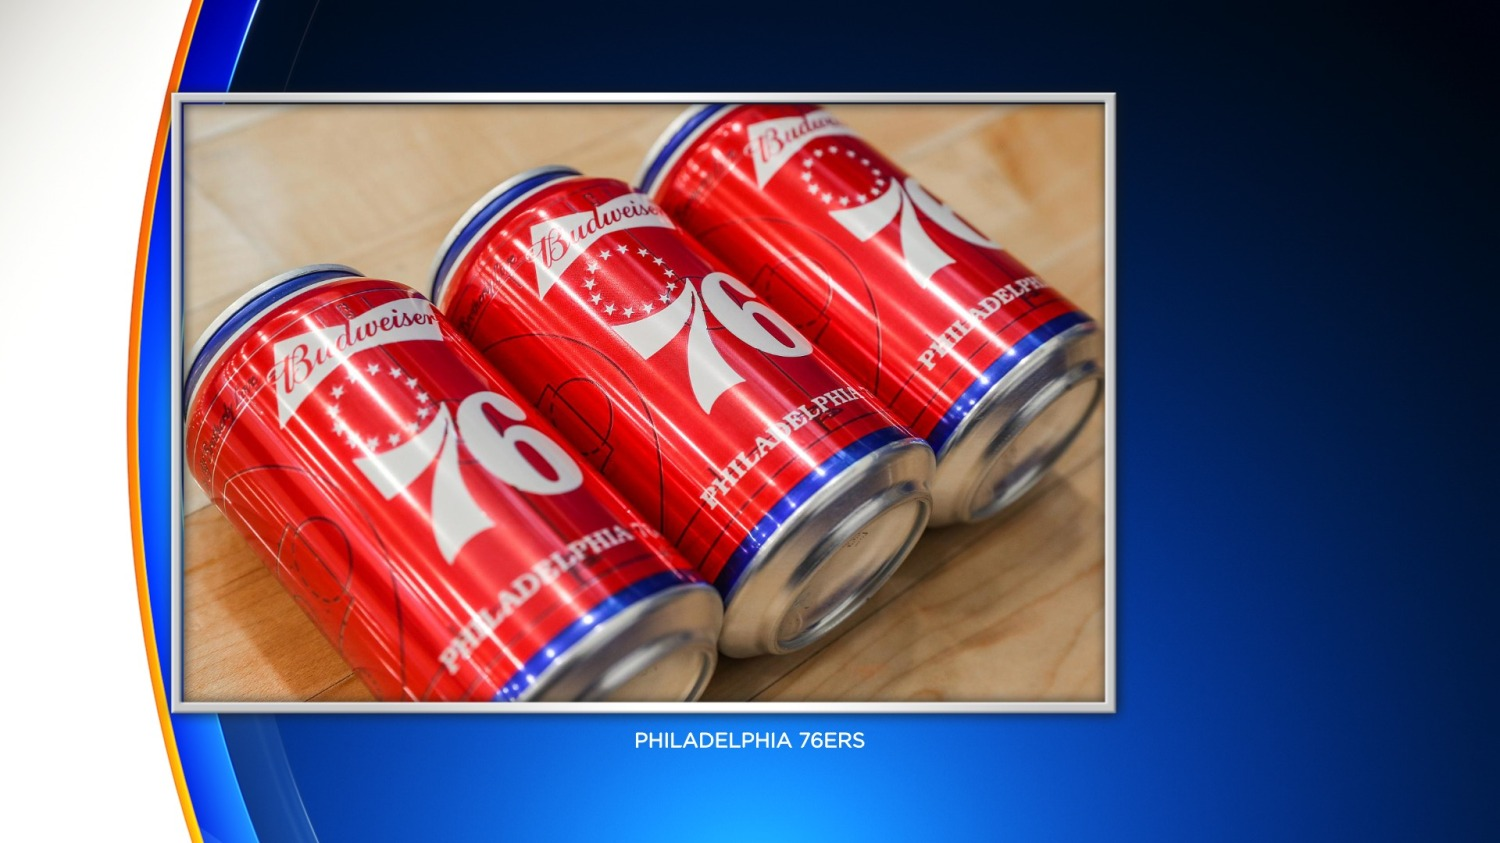 Budweiser Releases Sixers-Themed Beer Cans Ahead Of 2019-20 NBA Season